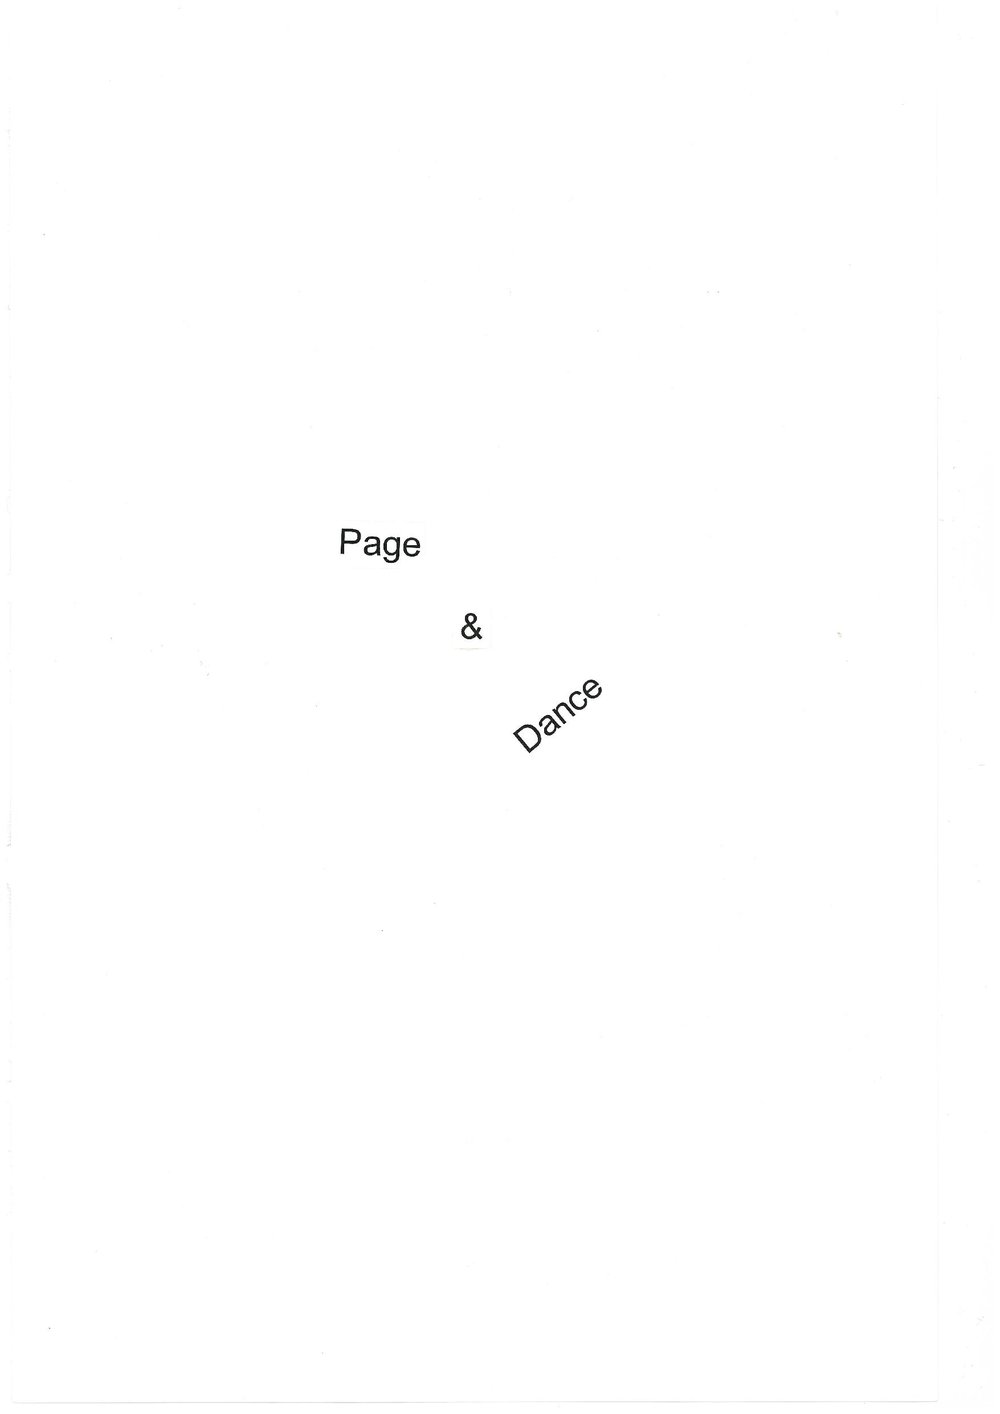 Emma-CeciliaAjanki Draft firstpages PAGE DANCE copy (dragged)-page-001.jpg